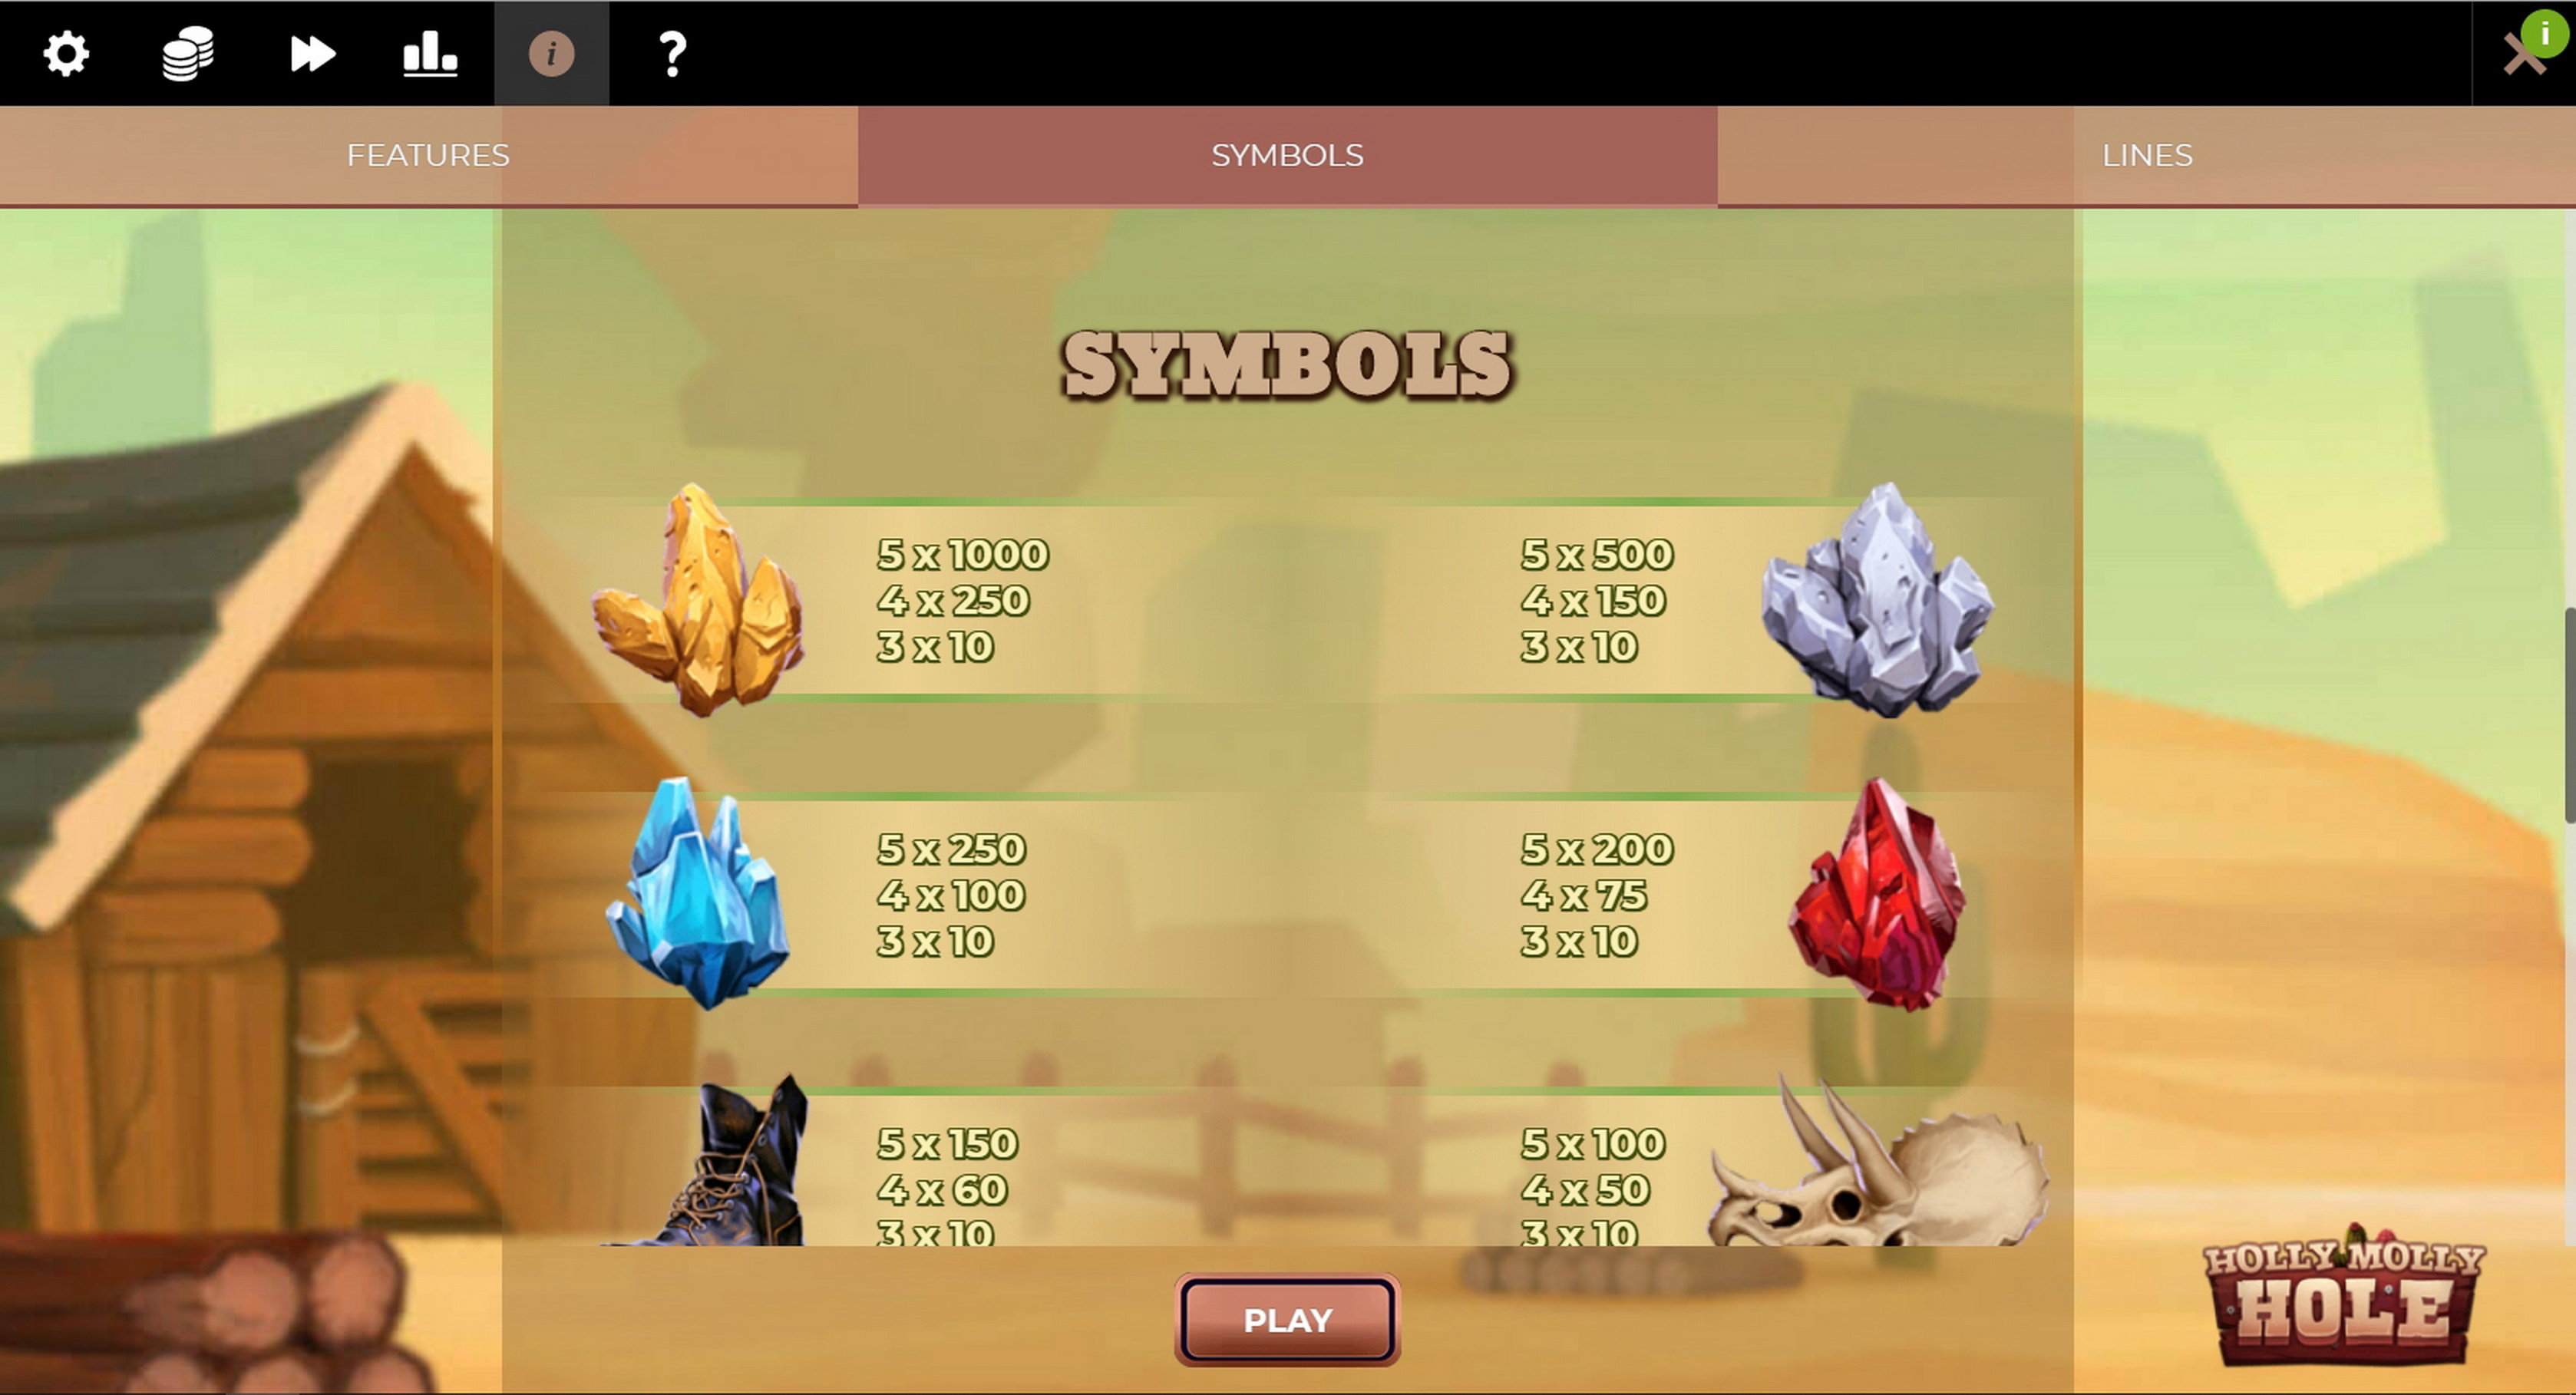 Info of Holly Molly Hole Slot Game by Spinmatic